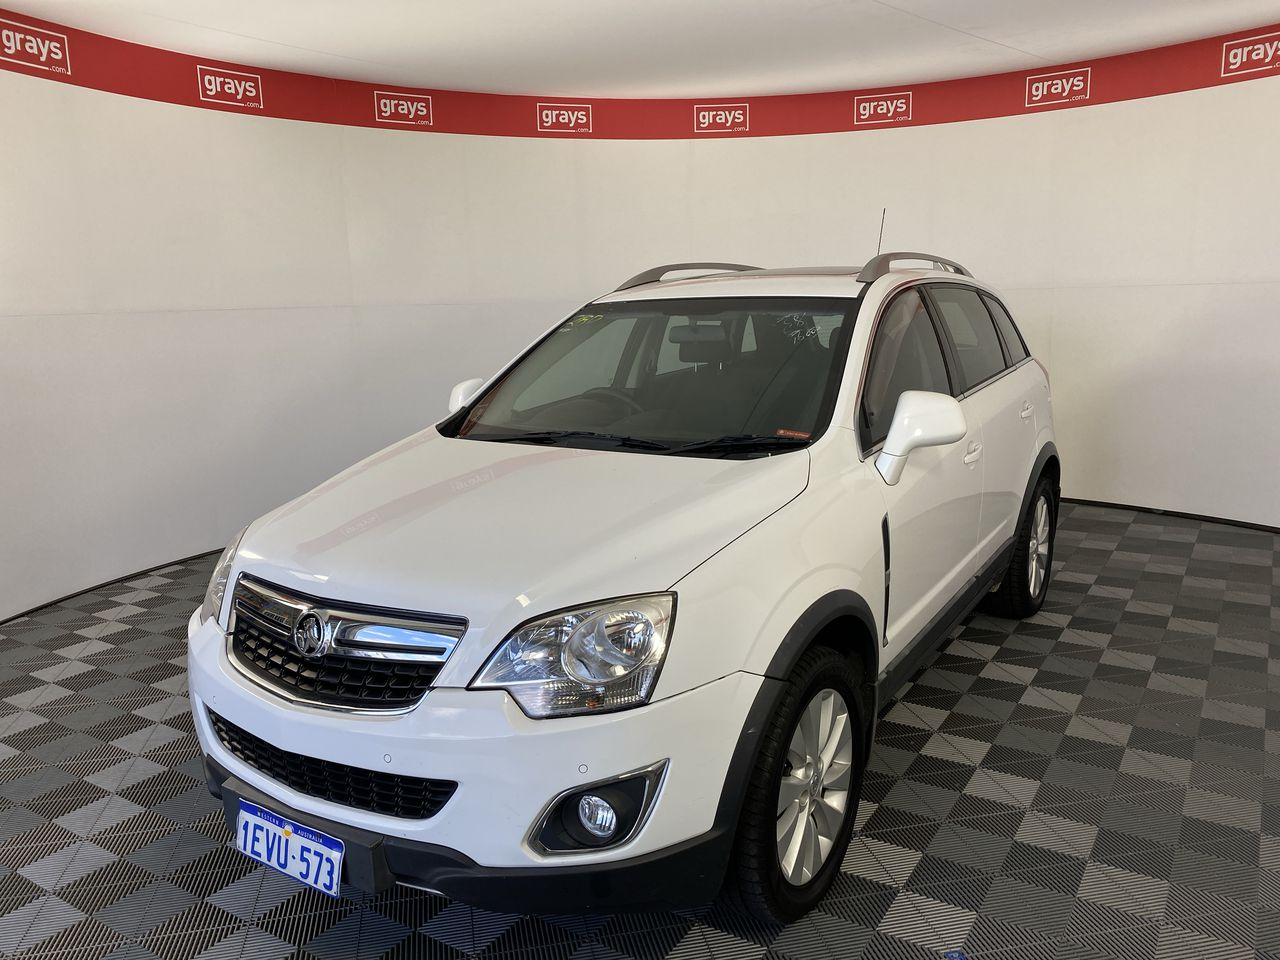 2015 Holden Captiva 5 LT AWD CG II Turbo Diesel Automatic Wagon